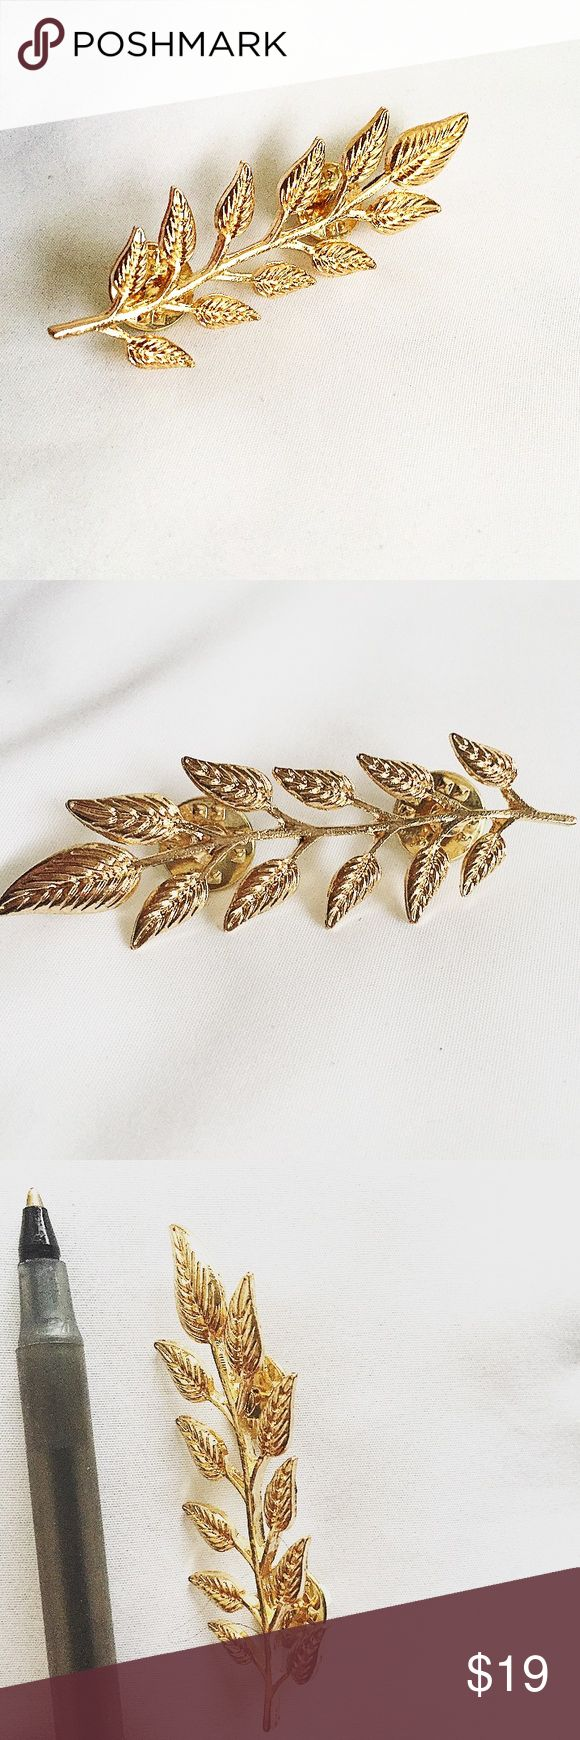 🌟gold leaf 🍂brooch | 5 for $25 SALE ‼️ 🌟 5 for $25 jewelry deal : pick 5 accessories marked with 🌟 symbol > add to bundle > make offer for $25! Or buy separately at full price  🛍Next day shipping 🛍No trades 🛍No returns Jewelry Brooches